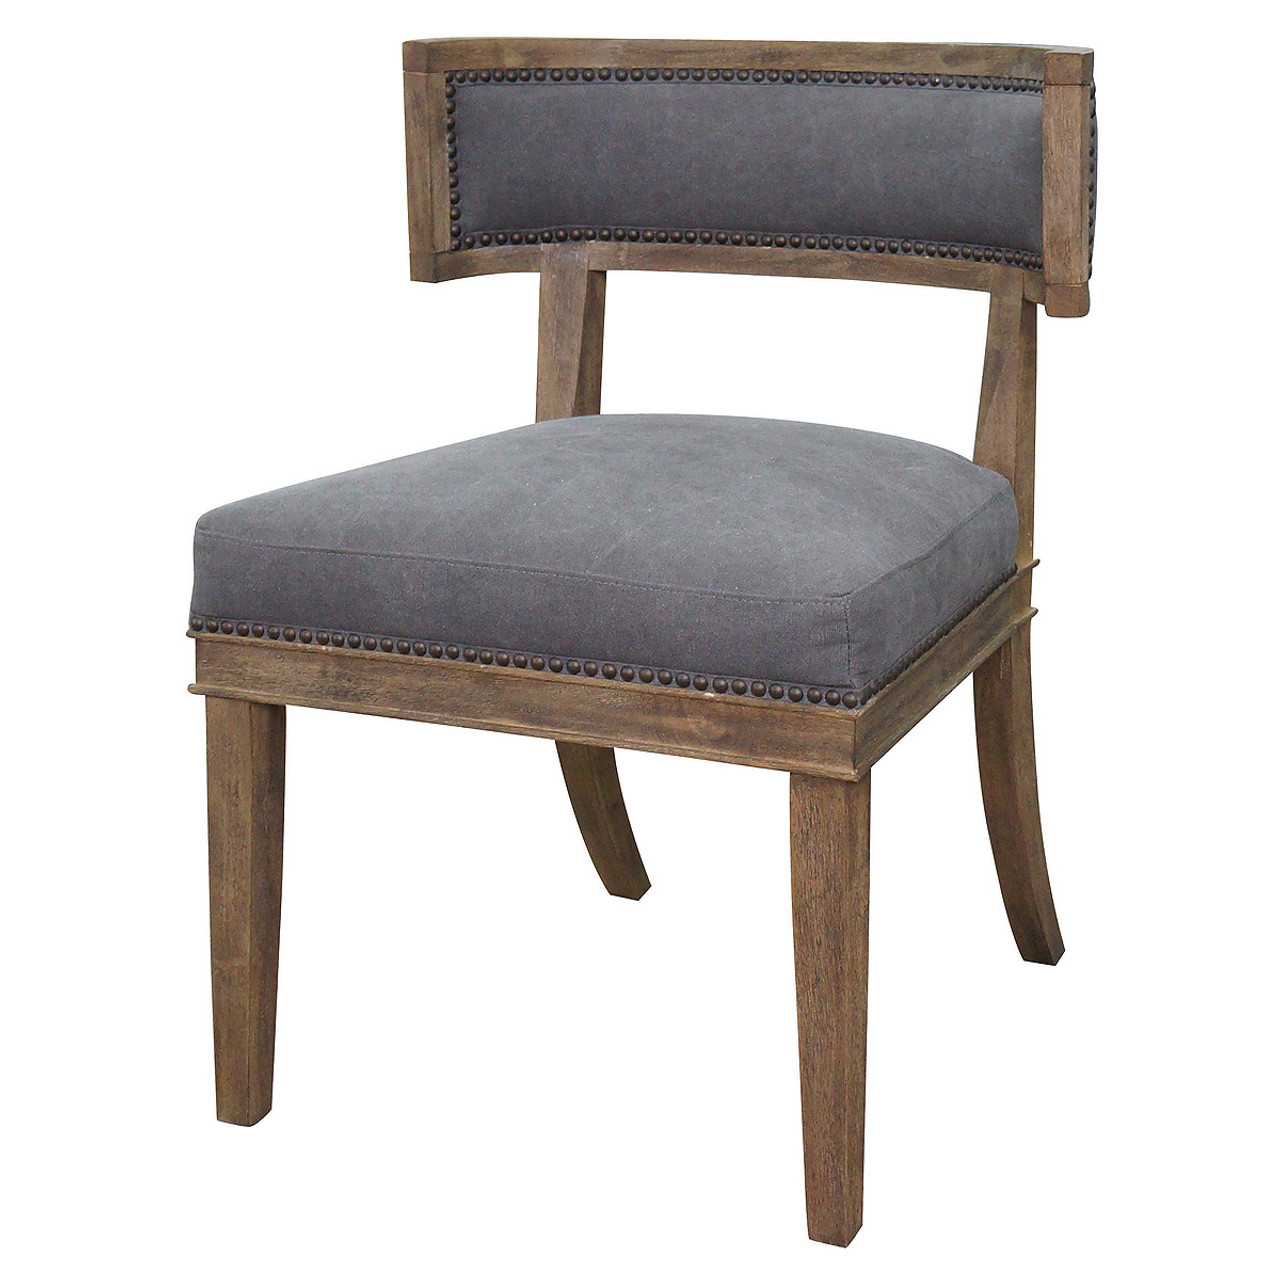 Carter Upholstered Curved Dining Chair  sc 1 st  Zin Home & Carter Upholstered Curved Dining Chair | Zin Home